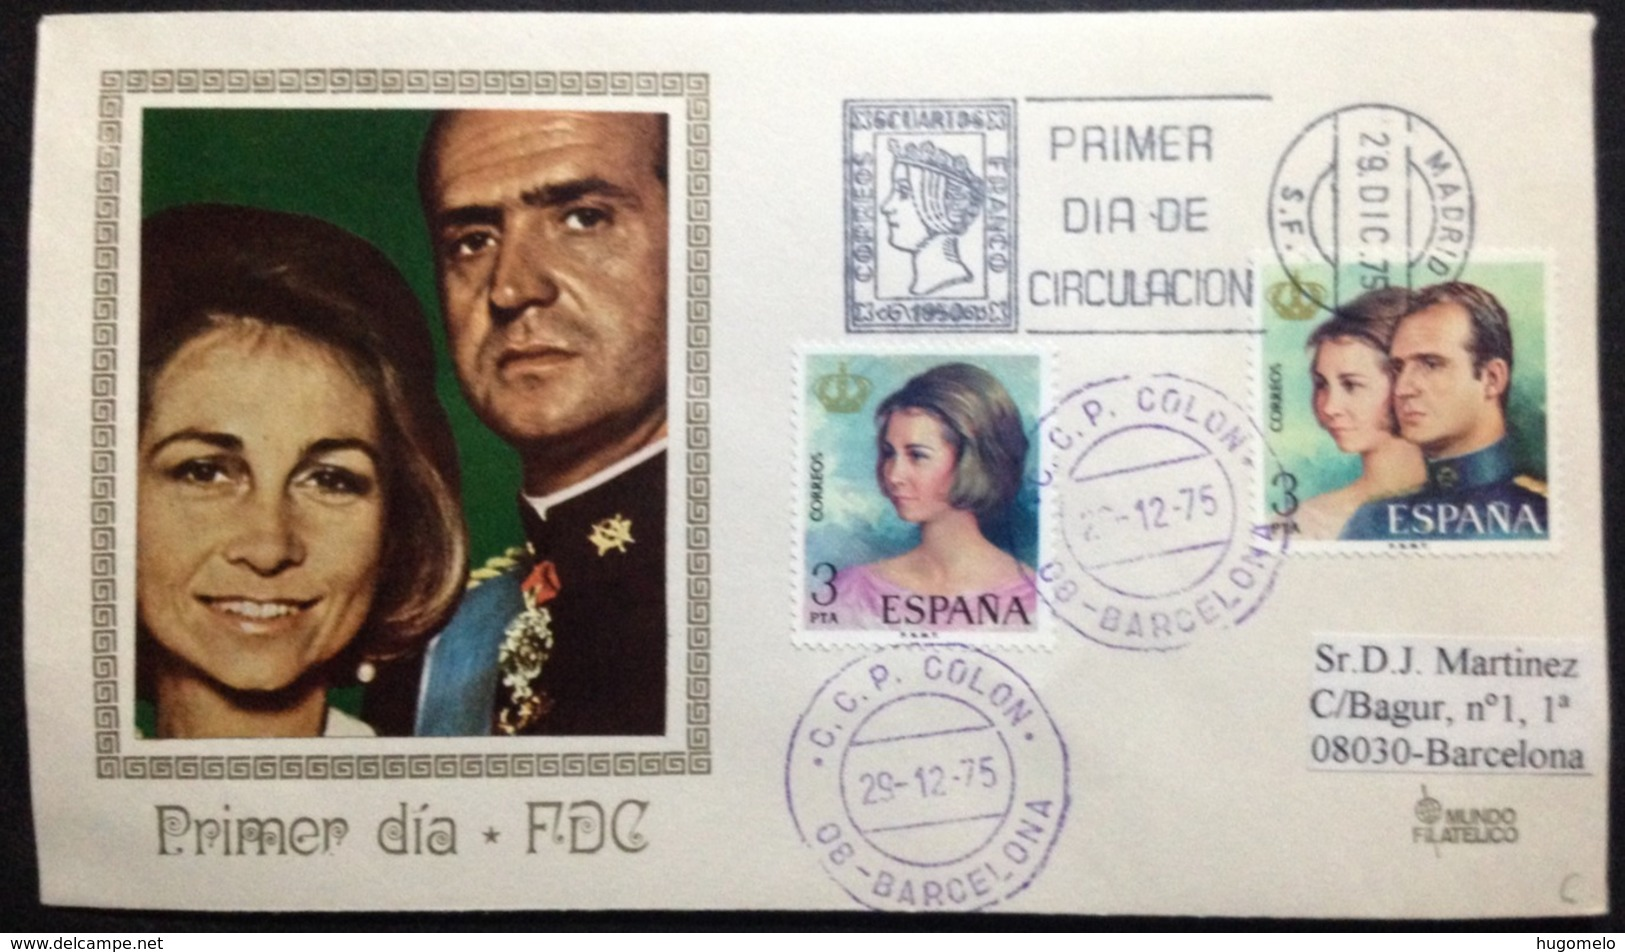 """Spain, Circulated FDC, """"Monarchy"""", """"Proclamation Of Juan Carlos I As THE KING OF SPAIN"""", 1975 - FDC"""